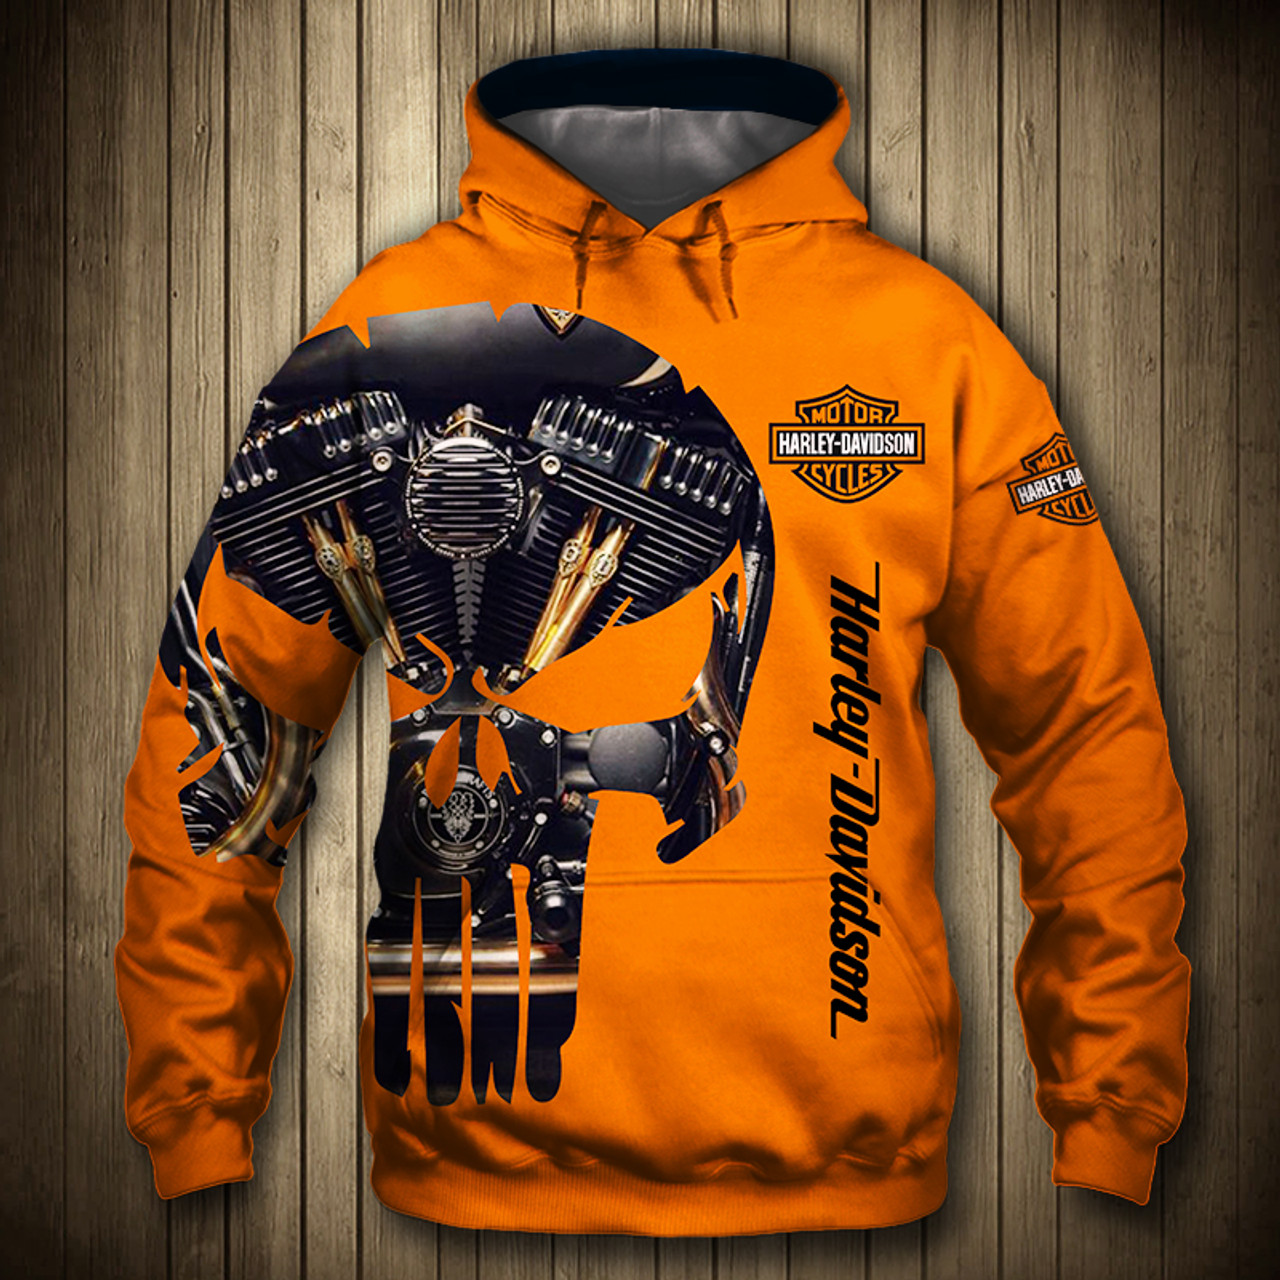 **(OFFICIAL-HARLEY-DAVIDSON-MOTORCYCLE-PULLOVER-HOODIE/CUSTOM-DETAILED-3D-GRAPHIC-PRINTED-PUNISHER-SKULL-ENGINE-DESIGN/FEATURING-OFFICIAL-CUSTOM-HARLEY-3D-LOGOS & OFFICIAL-CLASSIC-HARLEY-ORANGE-COLORS/WARM-PREMIUM-HARLEY-RIDING-PULLOVER-HOODIES)**